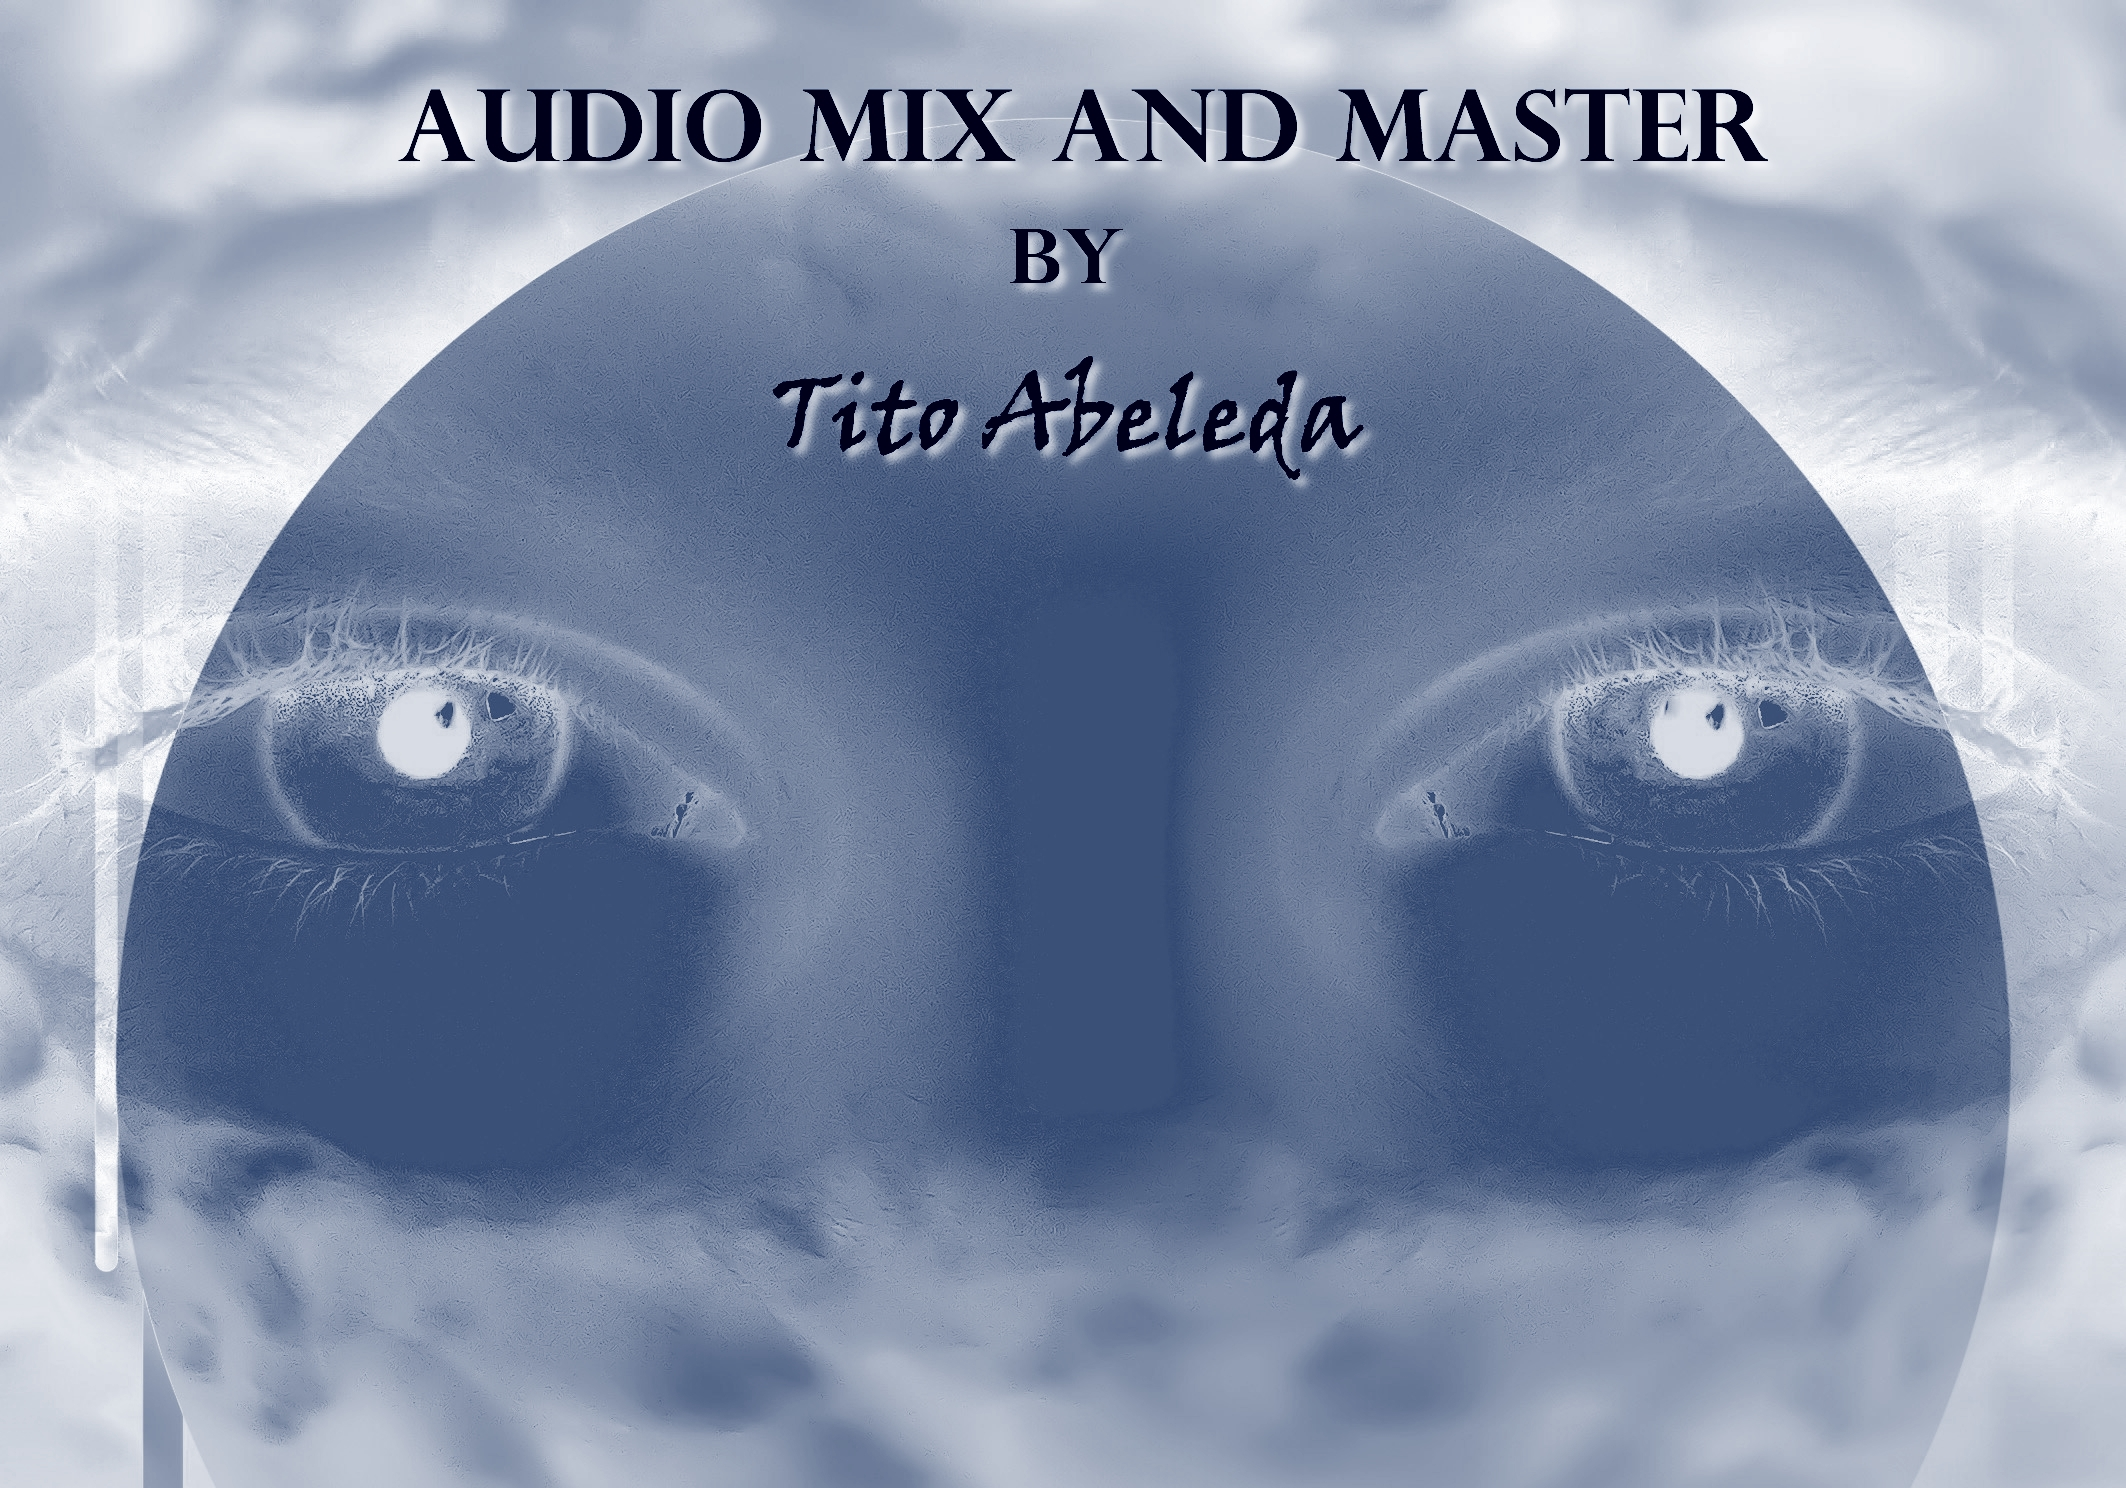 Audio Mix and Master by Tito Abeleda on Guru